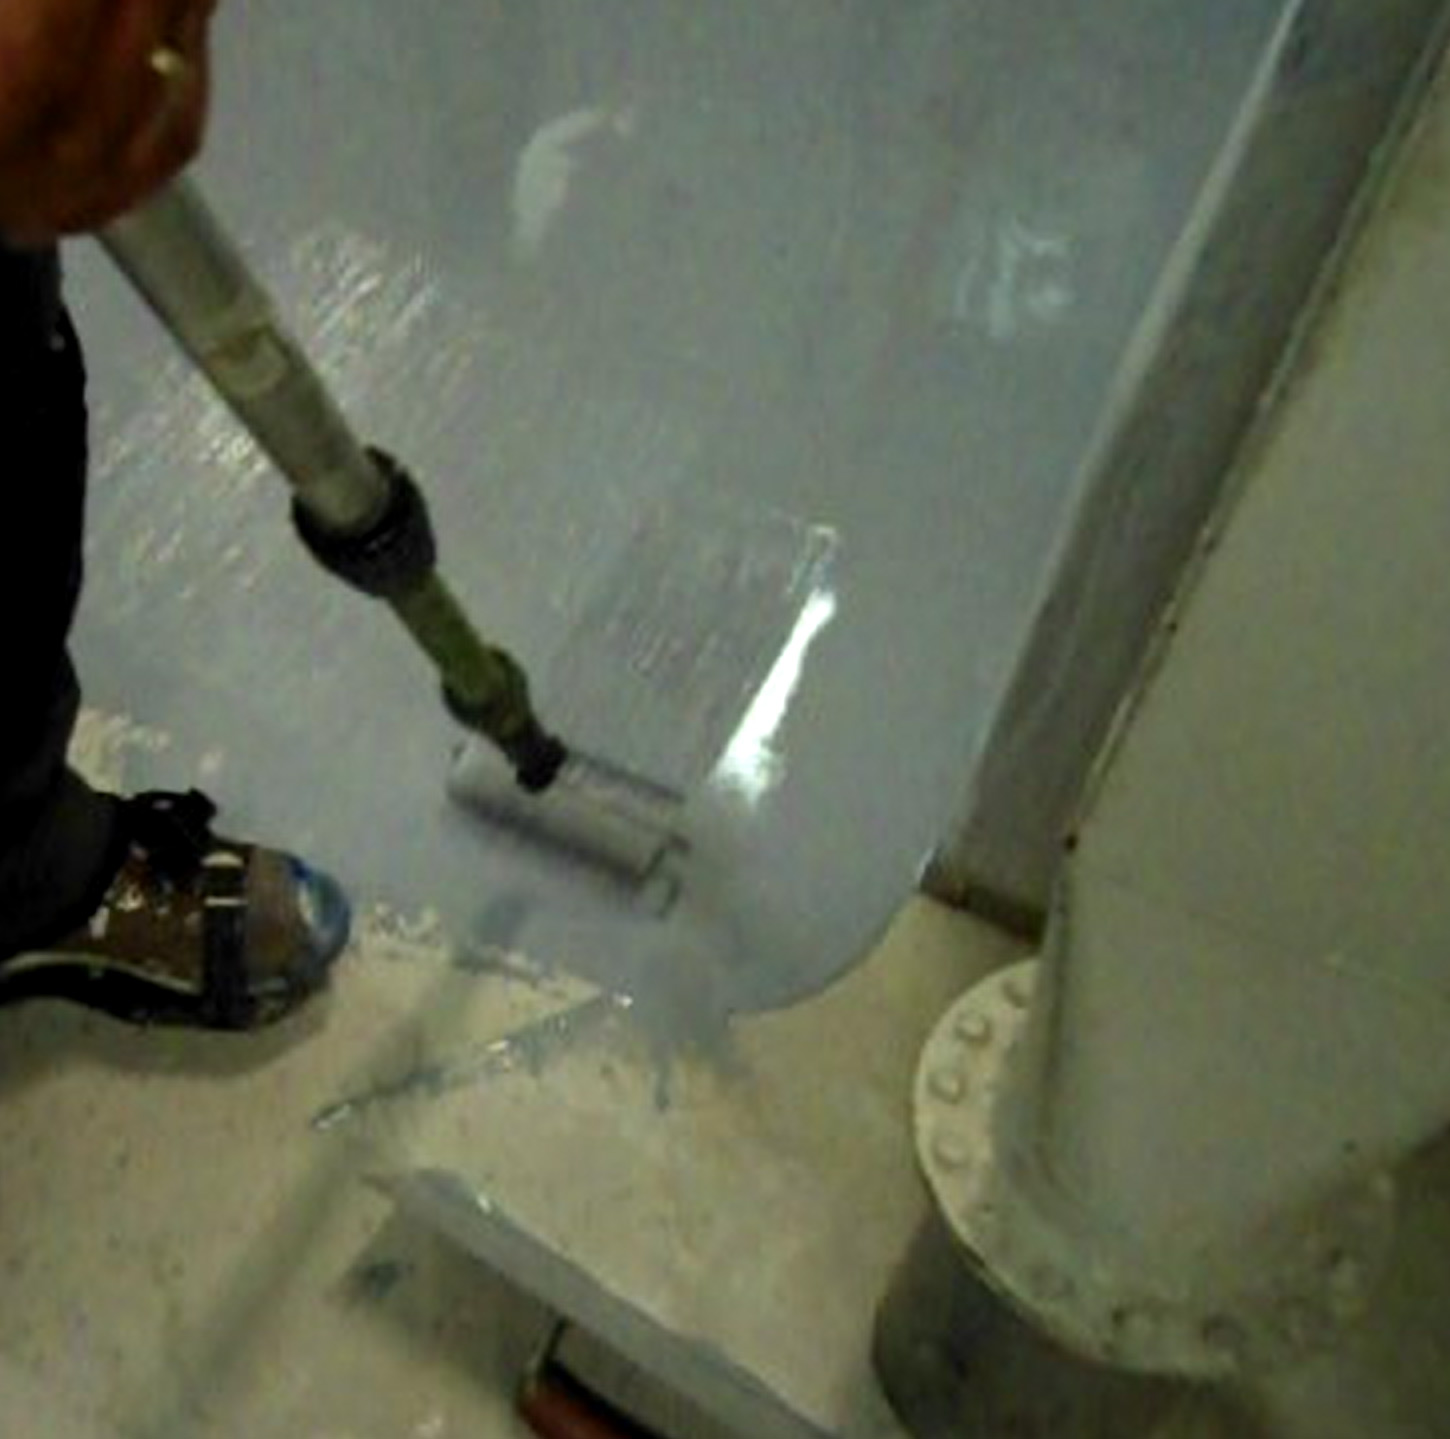 Application of SynDeck 1285 IMO-Flex Epoxy